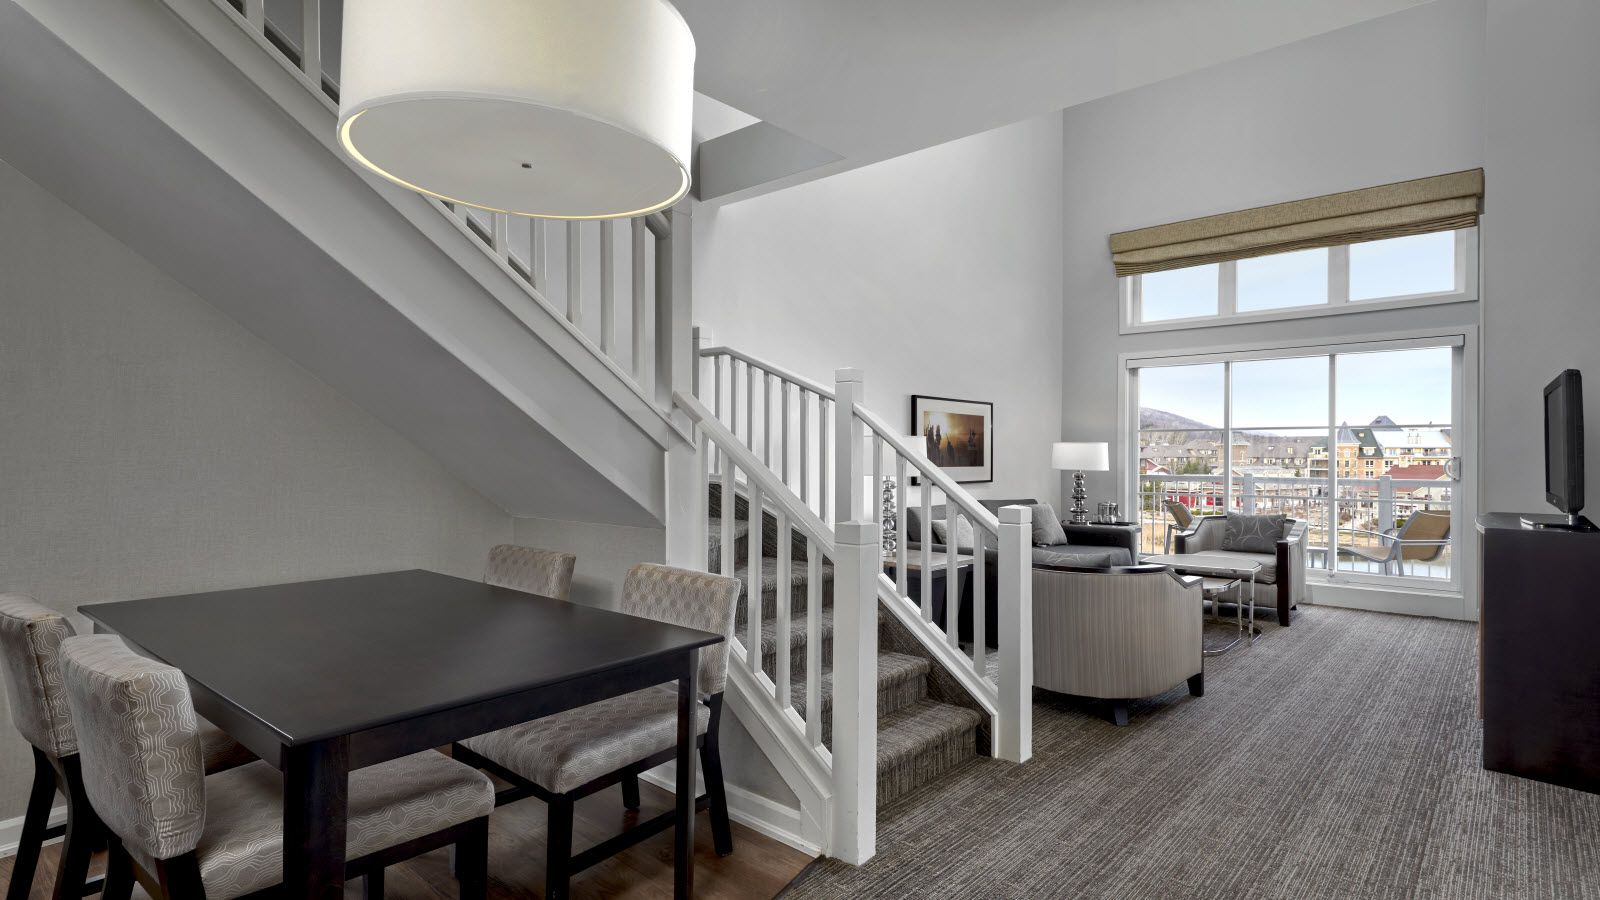 One Bedroom and Loft Suite | The Westin Trillium House, Blue Mountain